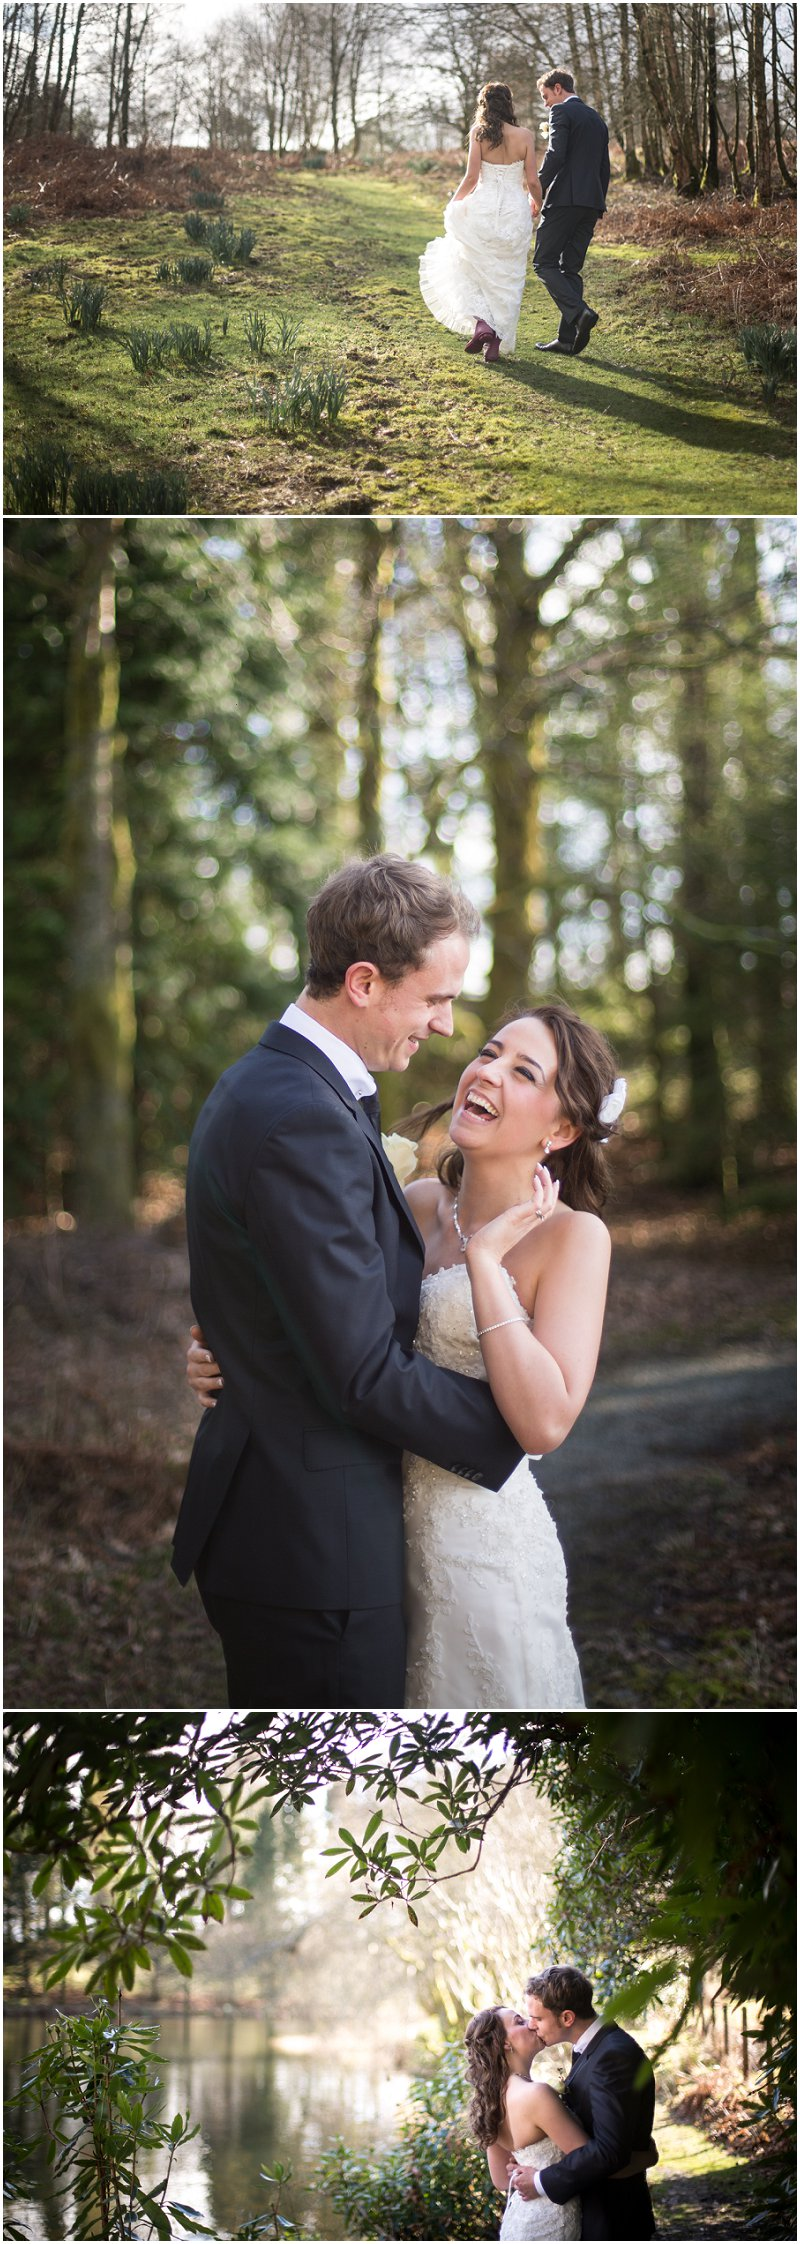 Linthwaite Wedding Photographer Karli Harrison Photography